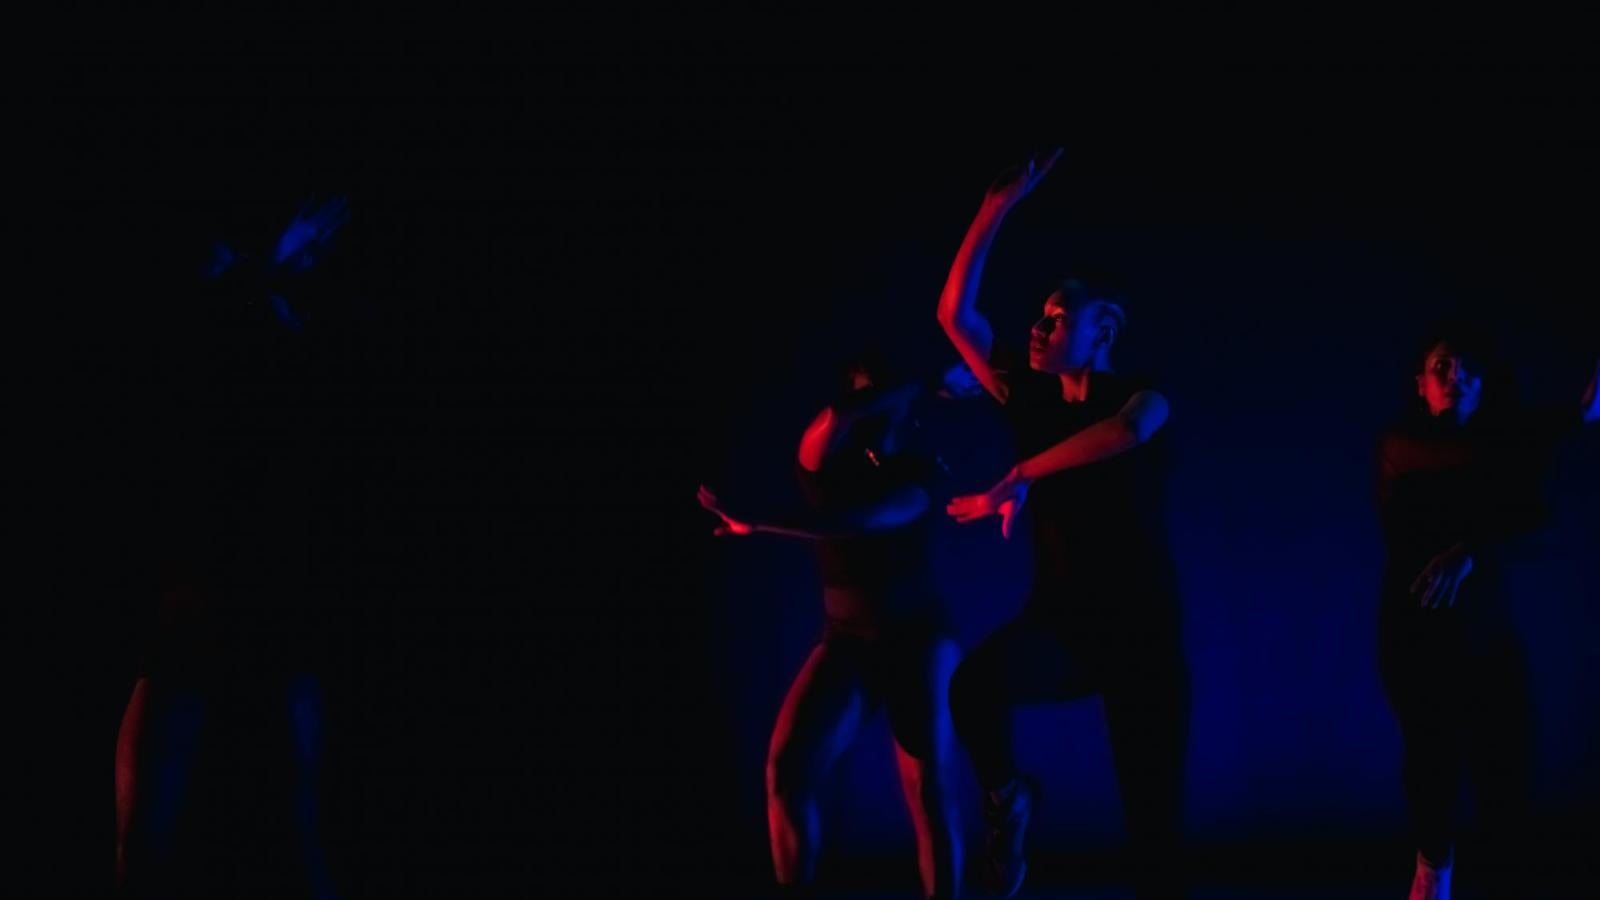 Several dancers perform on a darkly lit stage with red and blue lighting